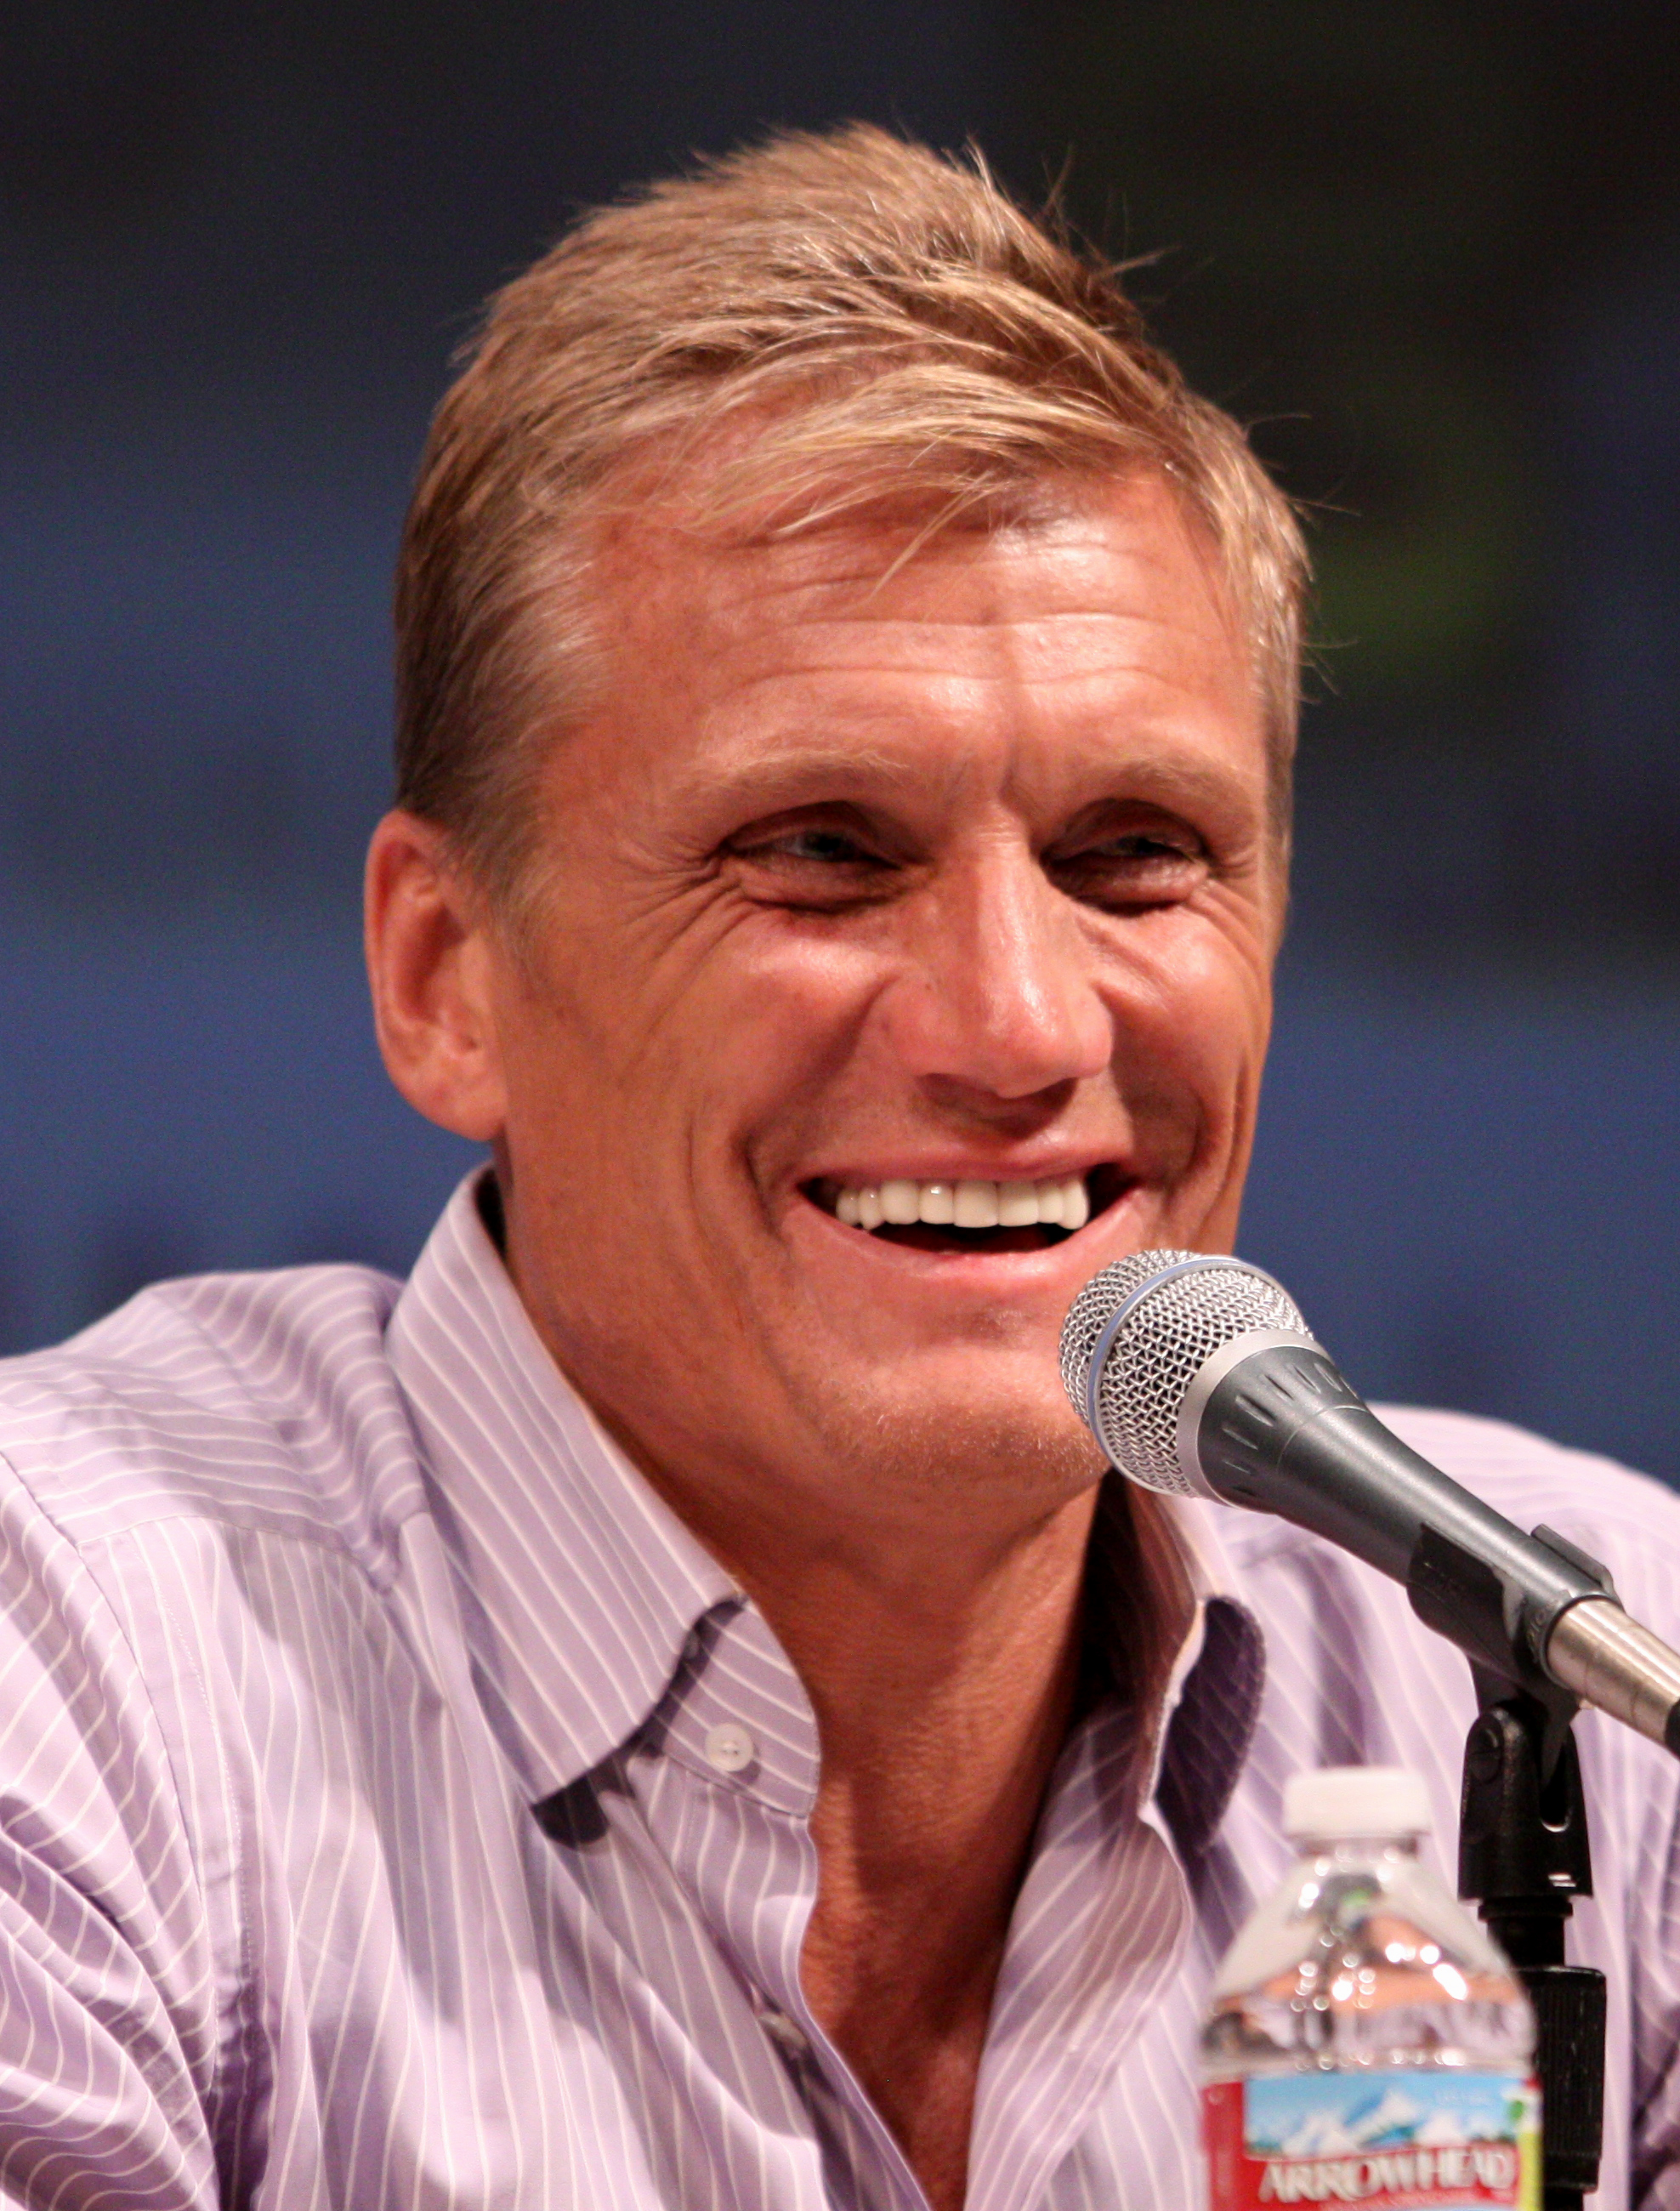 Lundgren in July 2010